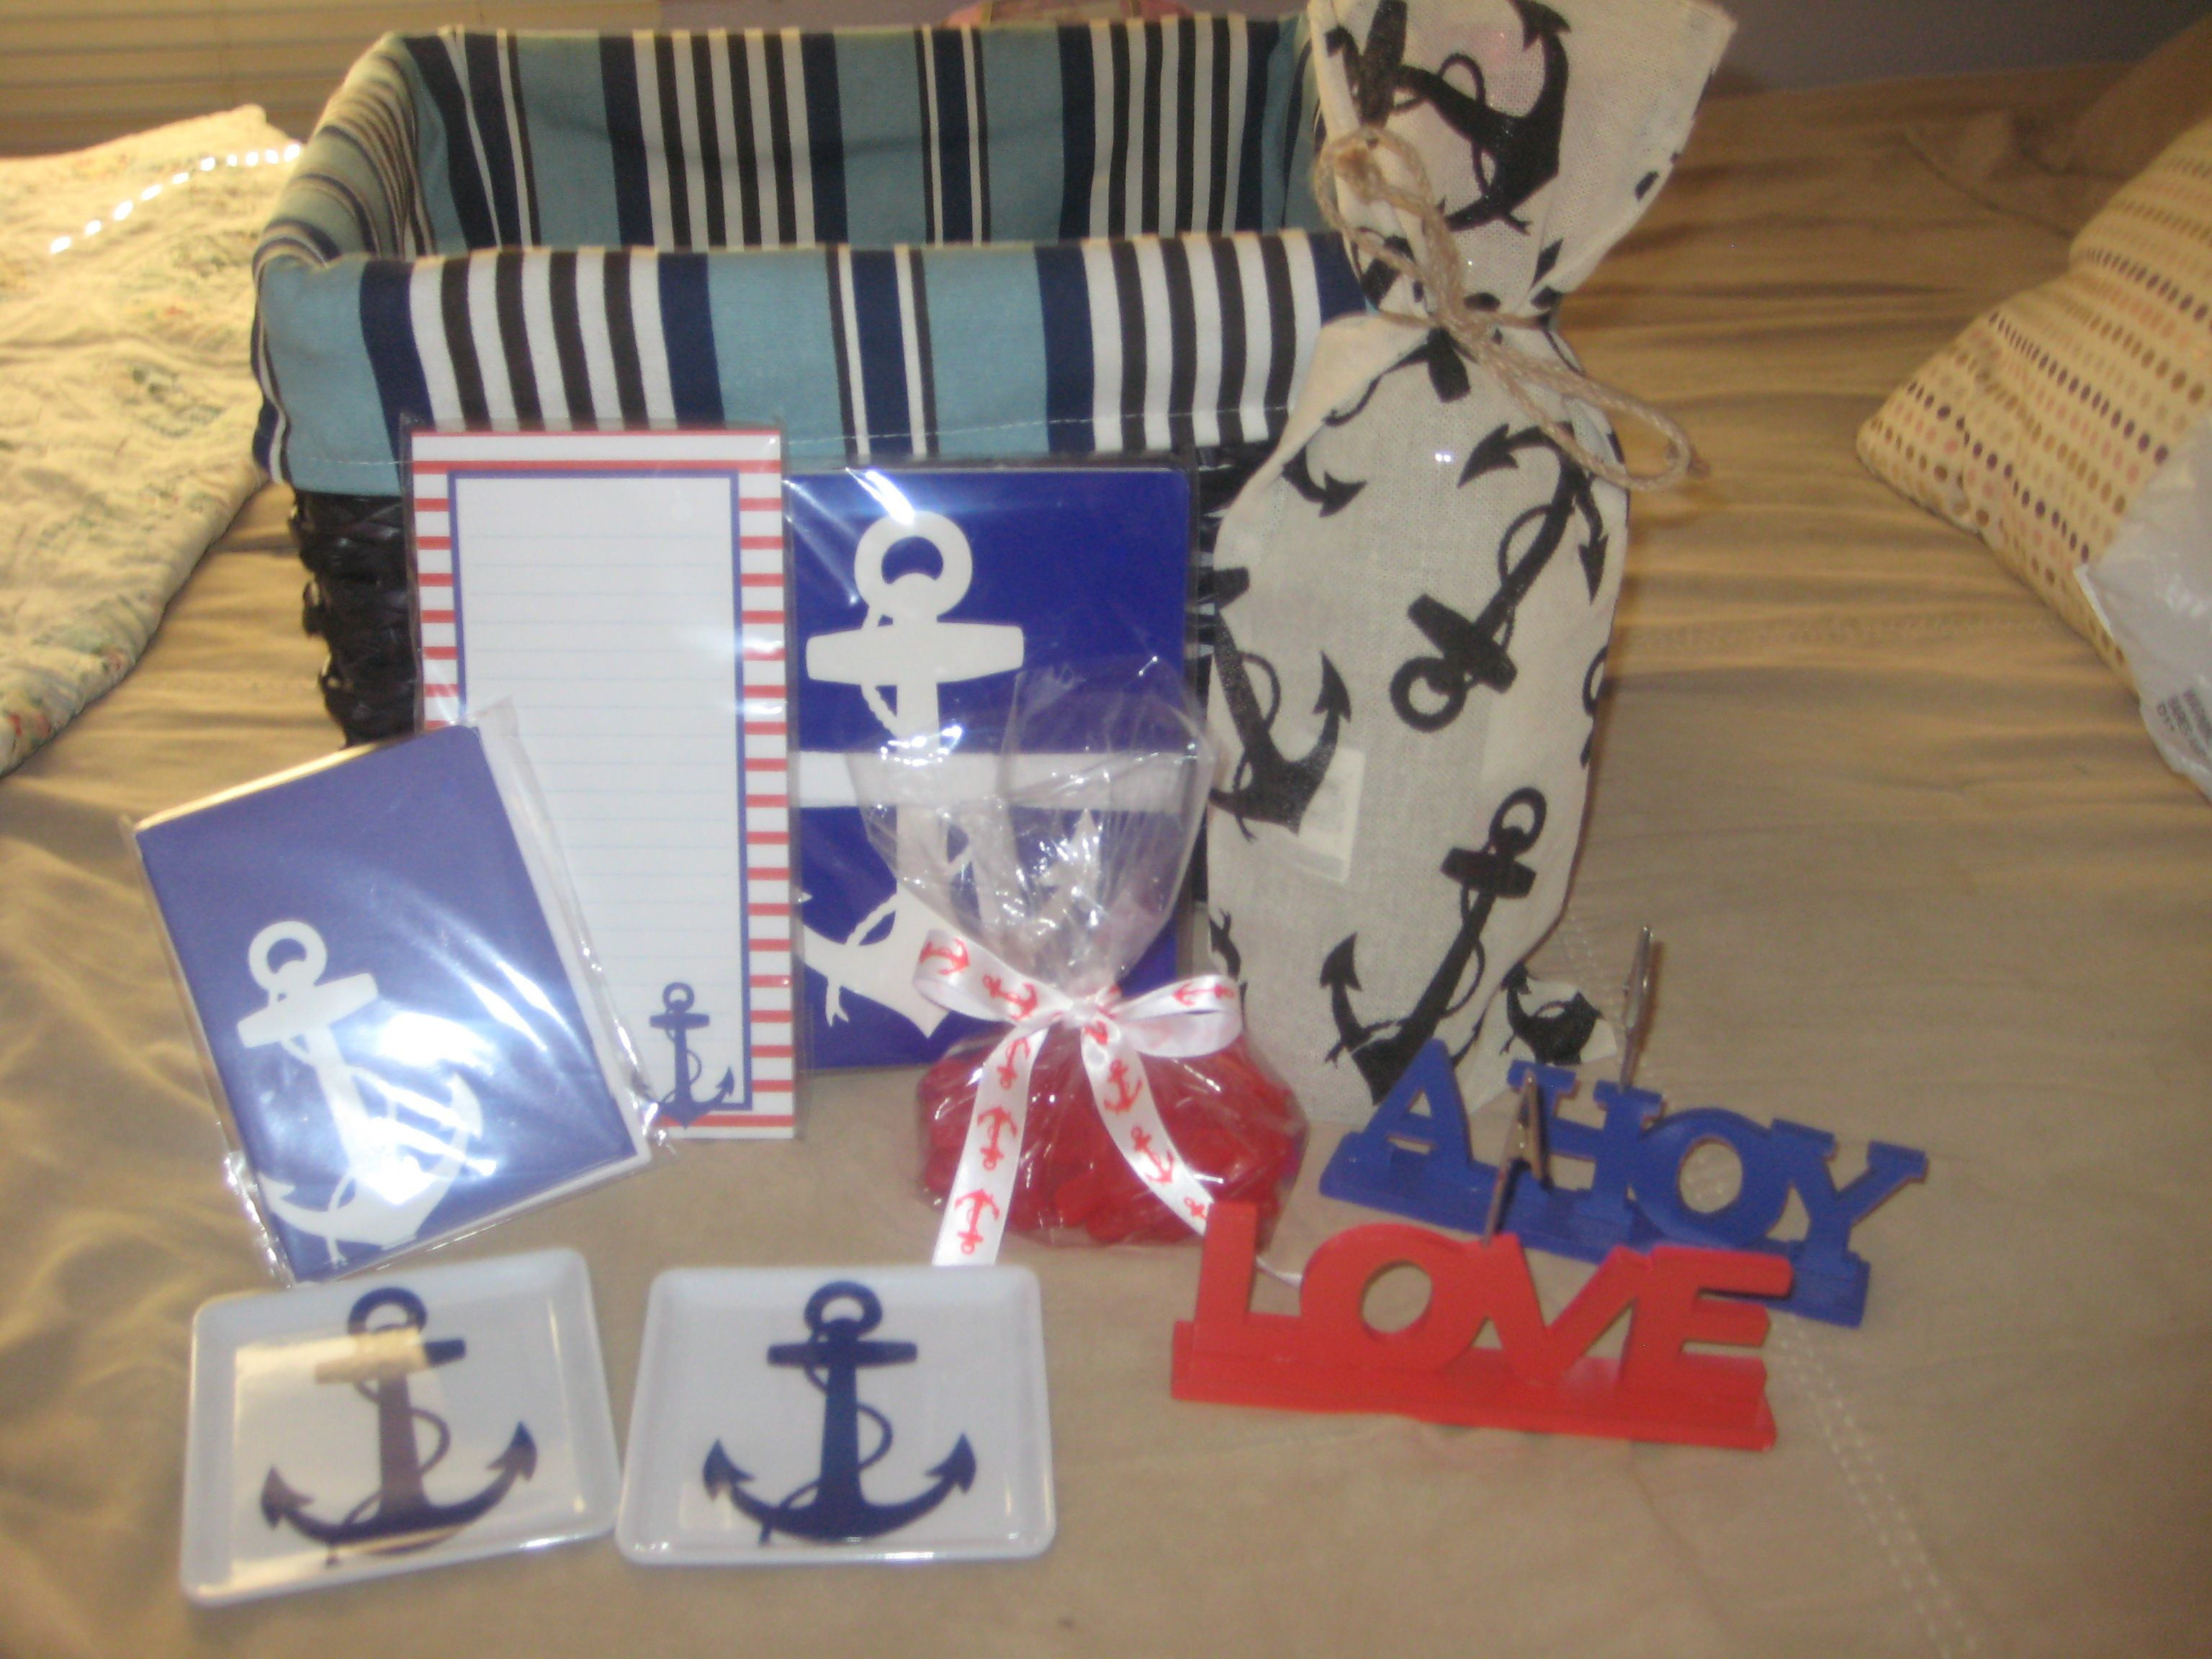 Wedding Themed Gift Basket : nautical gifts basket ideas gift basket themed weddings bachelorette ...